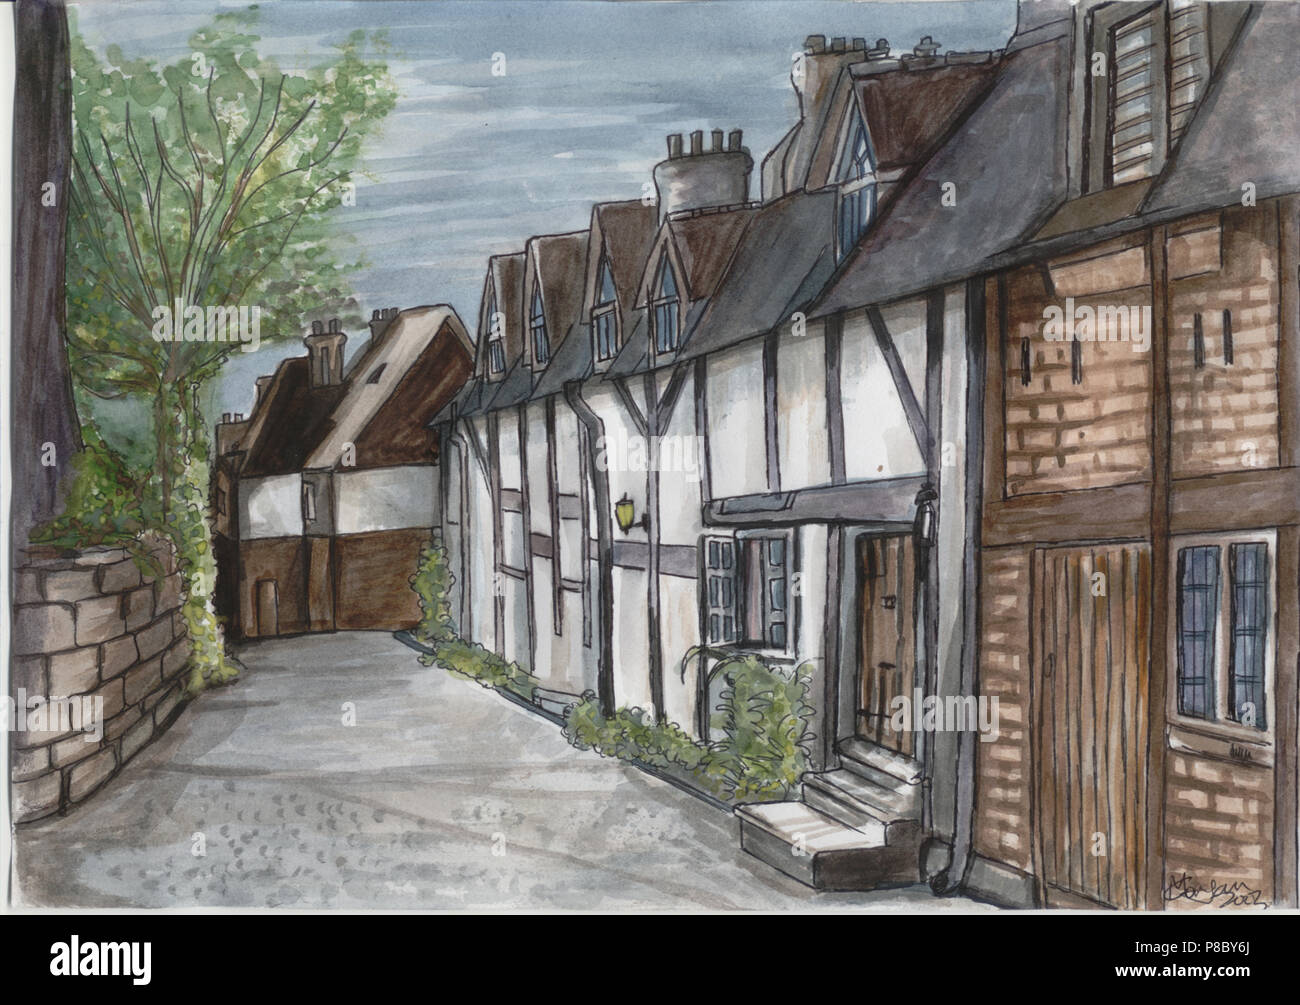 a row of houses in england painting by Matthew Corrigan - Stock Image